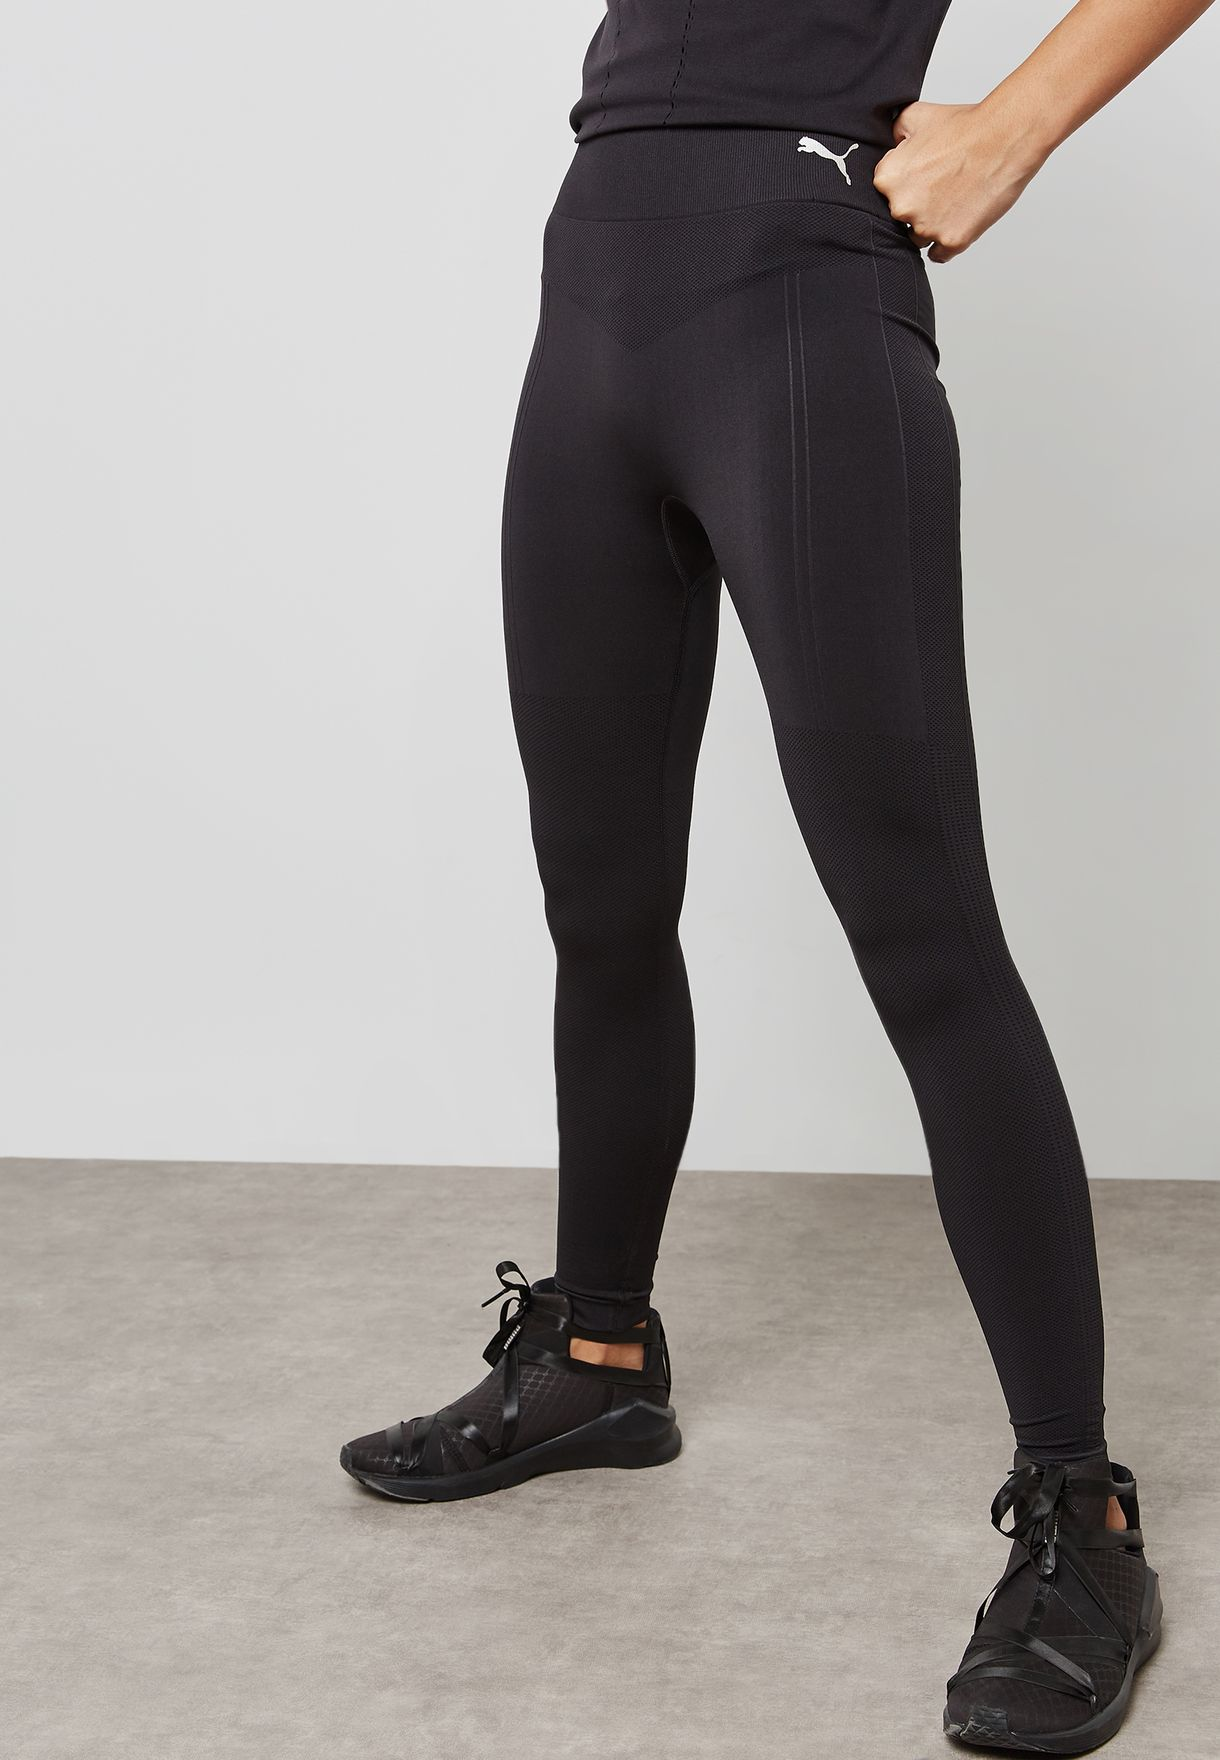 9e33582987a553 Shop PUMA black evoKNIT Seamless Leggings 59506101 for Women in UAE ...